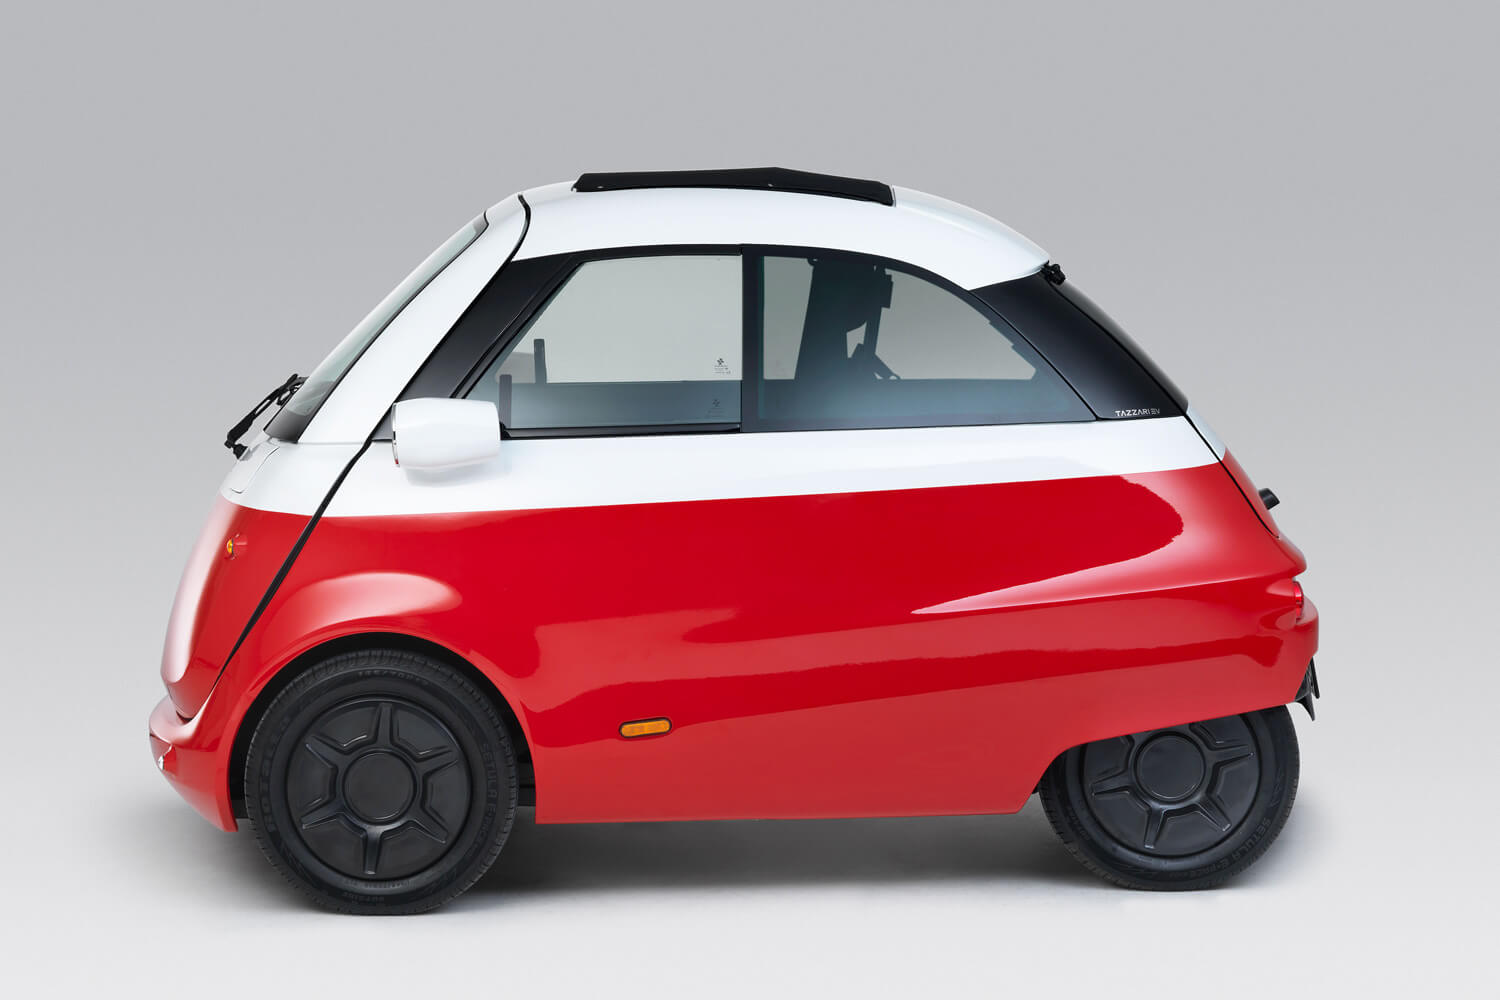 [Bild: microlino-car-red-side-002.jpg]